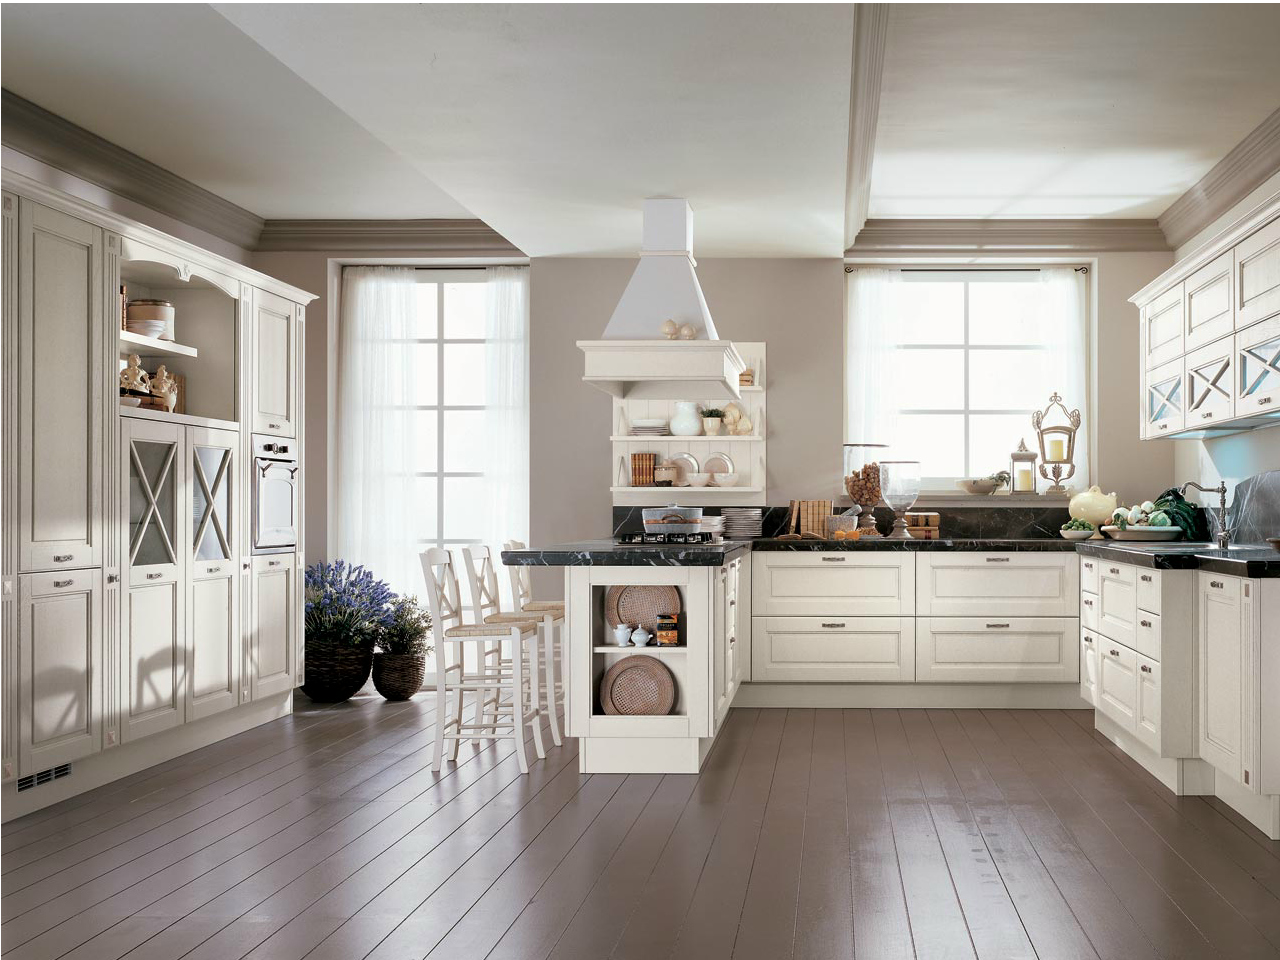 AGNESE Cucina by Cucine Lube